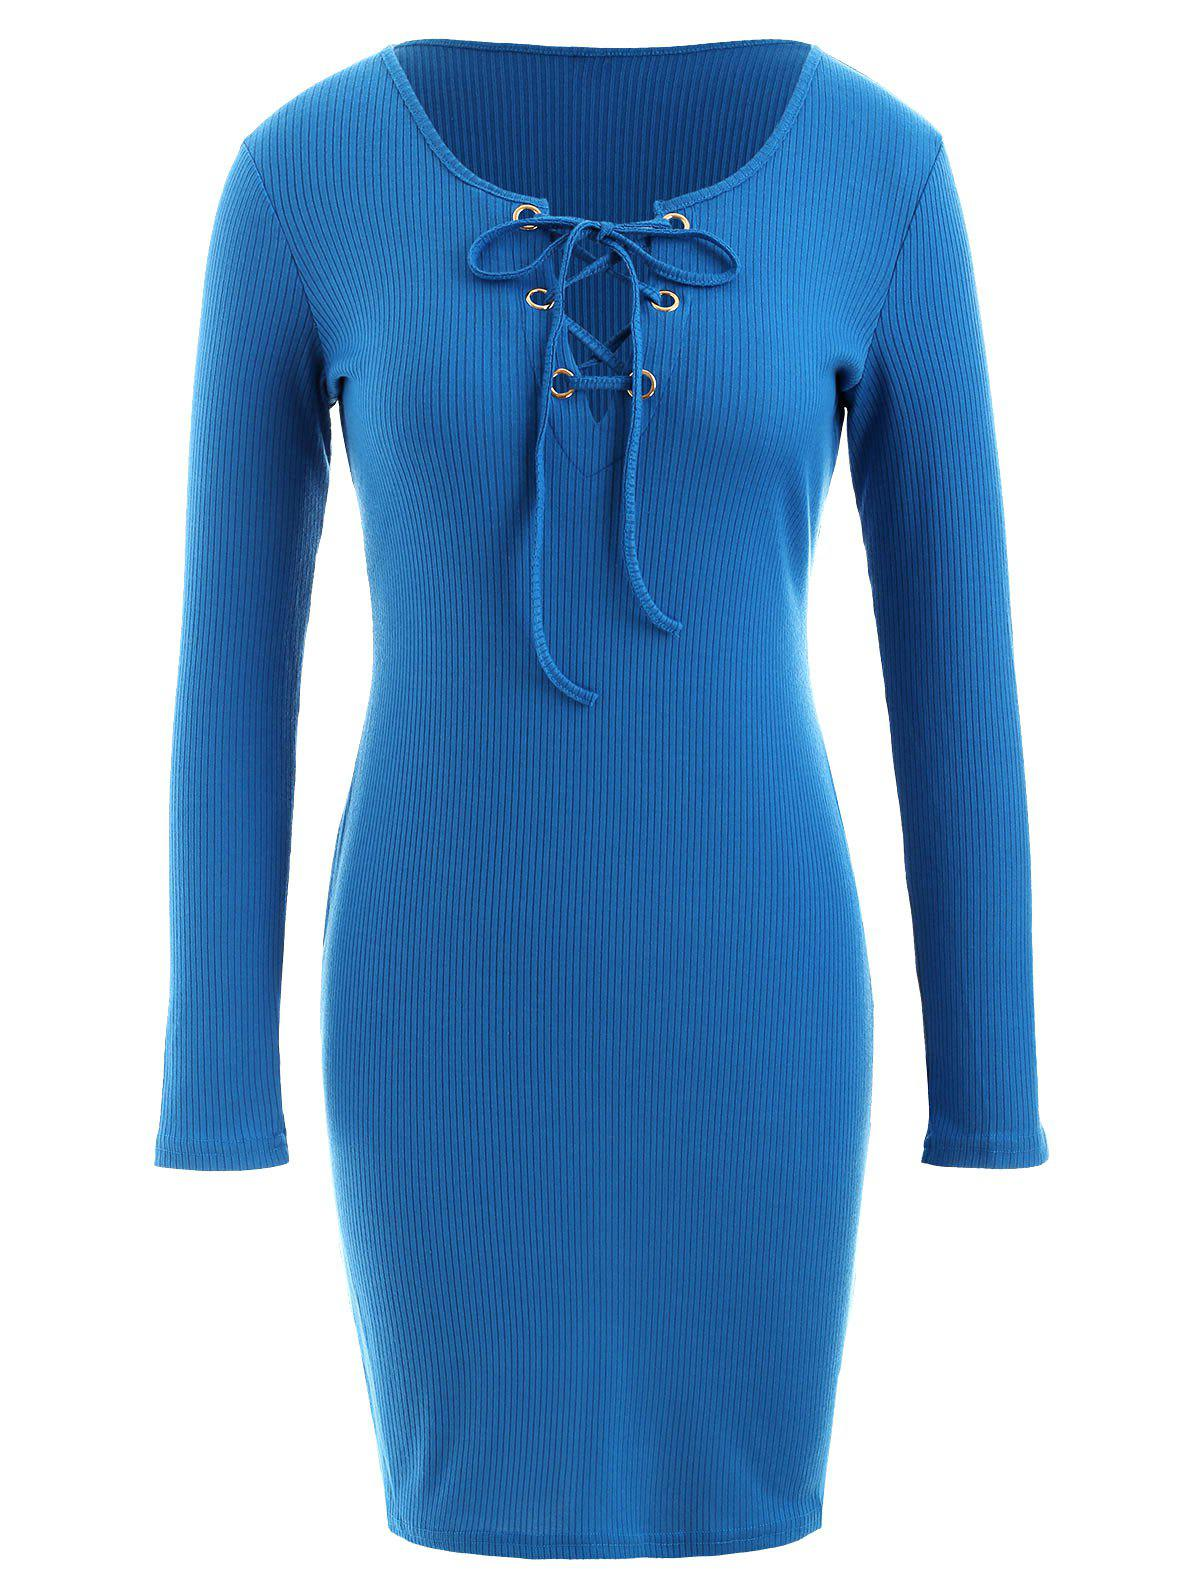 New Long Sleeve Lace-up Ribbed Dress